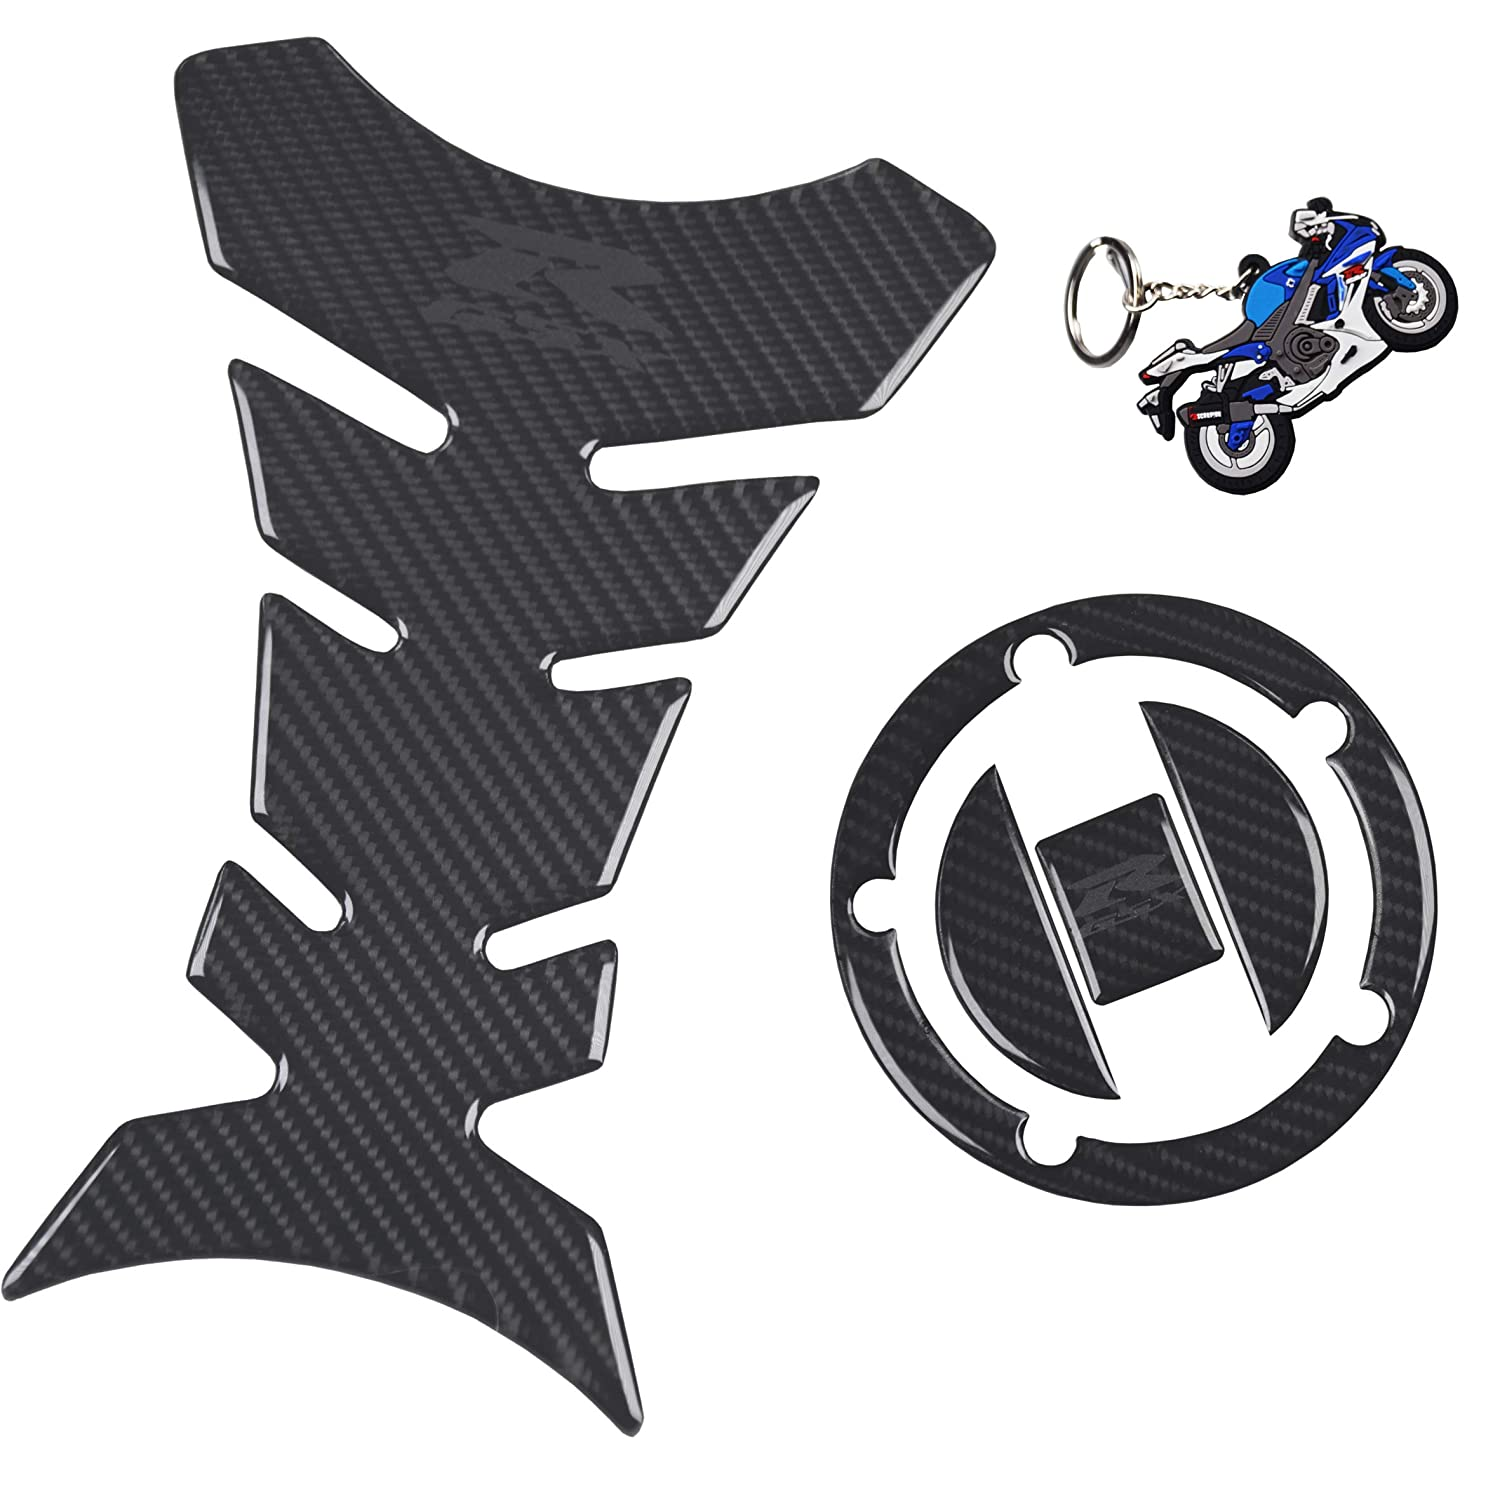 3pcs tank pad set Real Carbon look GSXR Gas Cap Fuel Cap Decal Tank Pad Decal Stickers Tank Pad Protector Grey gsxr for GSXR 600 GSXR 750 GSXR 1000 K6 K7 K8 K9 L1 2006-2017 and GSXR650 keychain